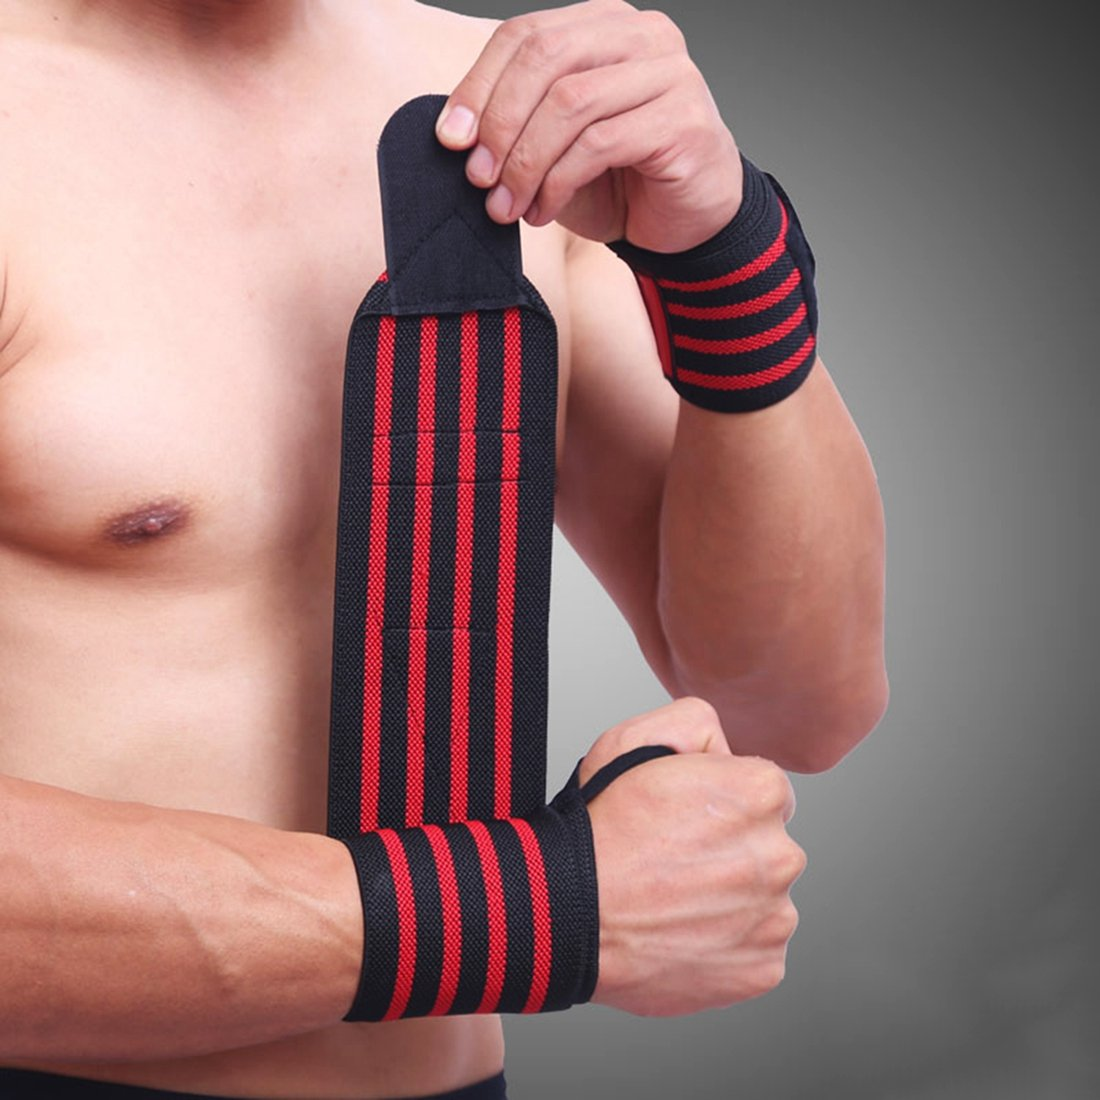 YISUYA Wrist Wraps Fitness Wrist Support Braces Belt Protector for Weightlifting, Cross Training, Workout, Gym, Powerlifting, Bodybuilding, Suitable for Men Women by YISUYA